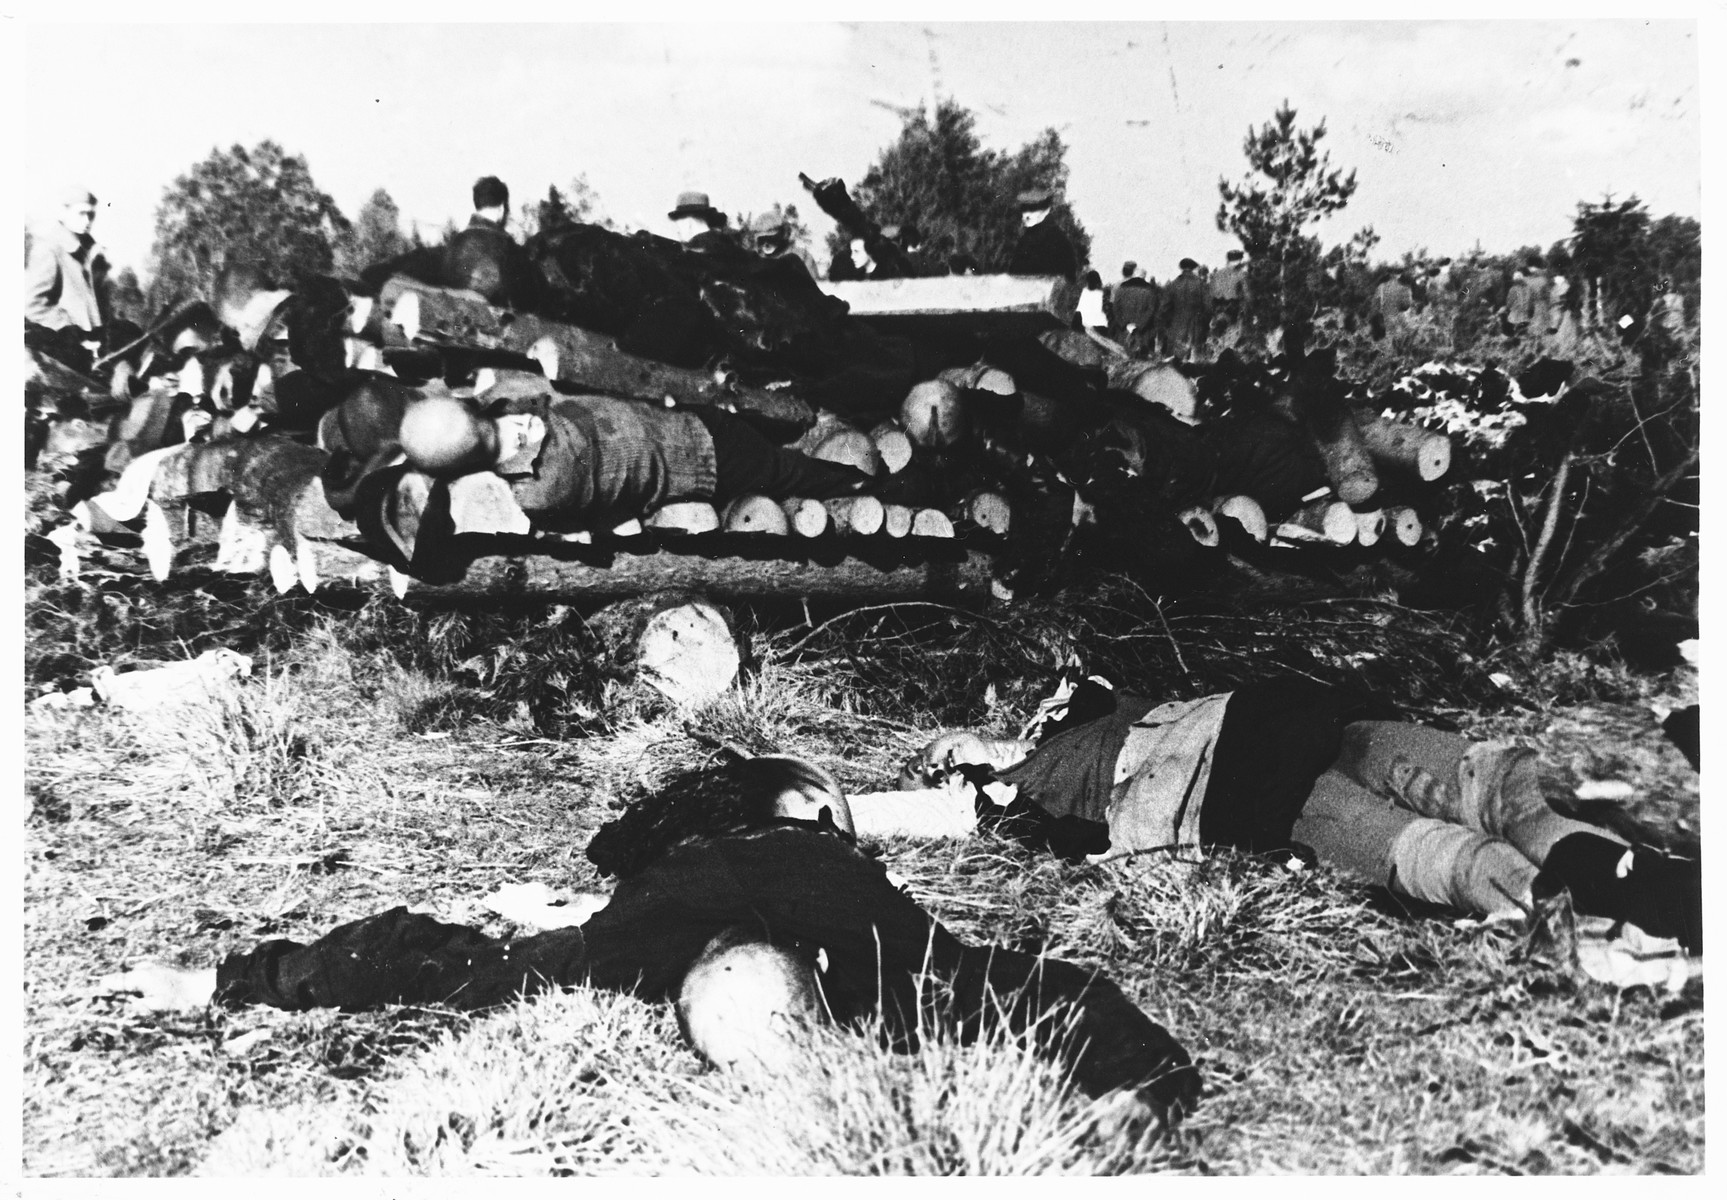 Soviet soldiers observe recently burned corpses stacked on sawed lumber on the grounds of the Klooga concentration camp.